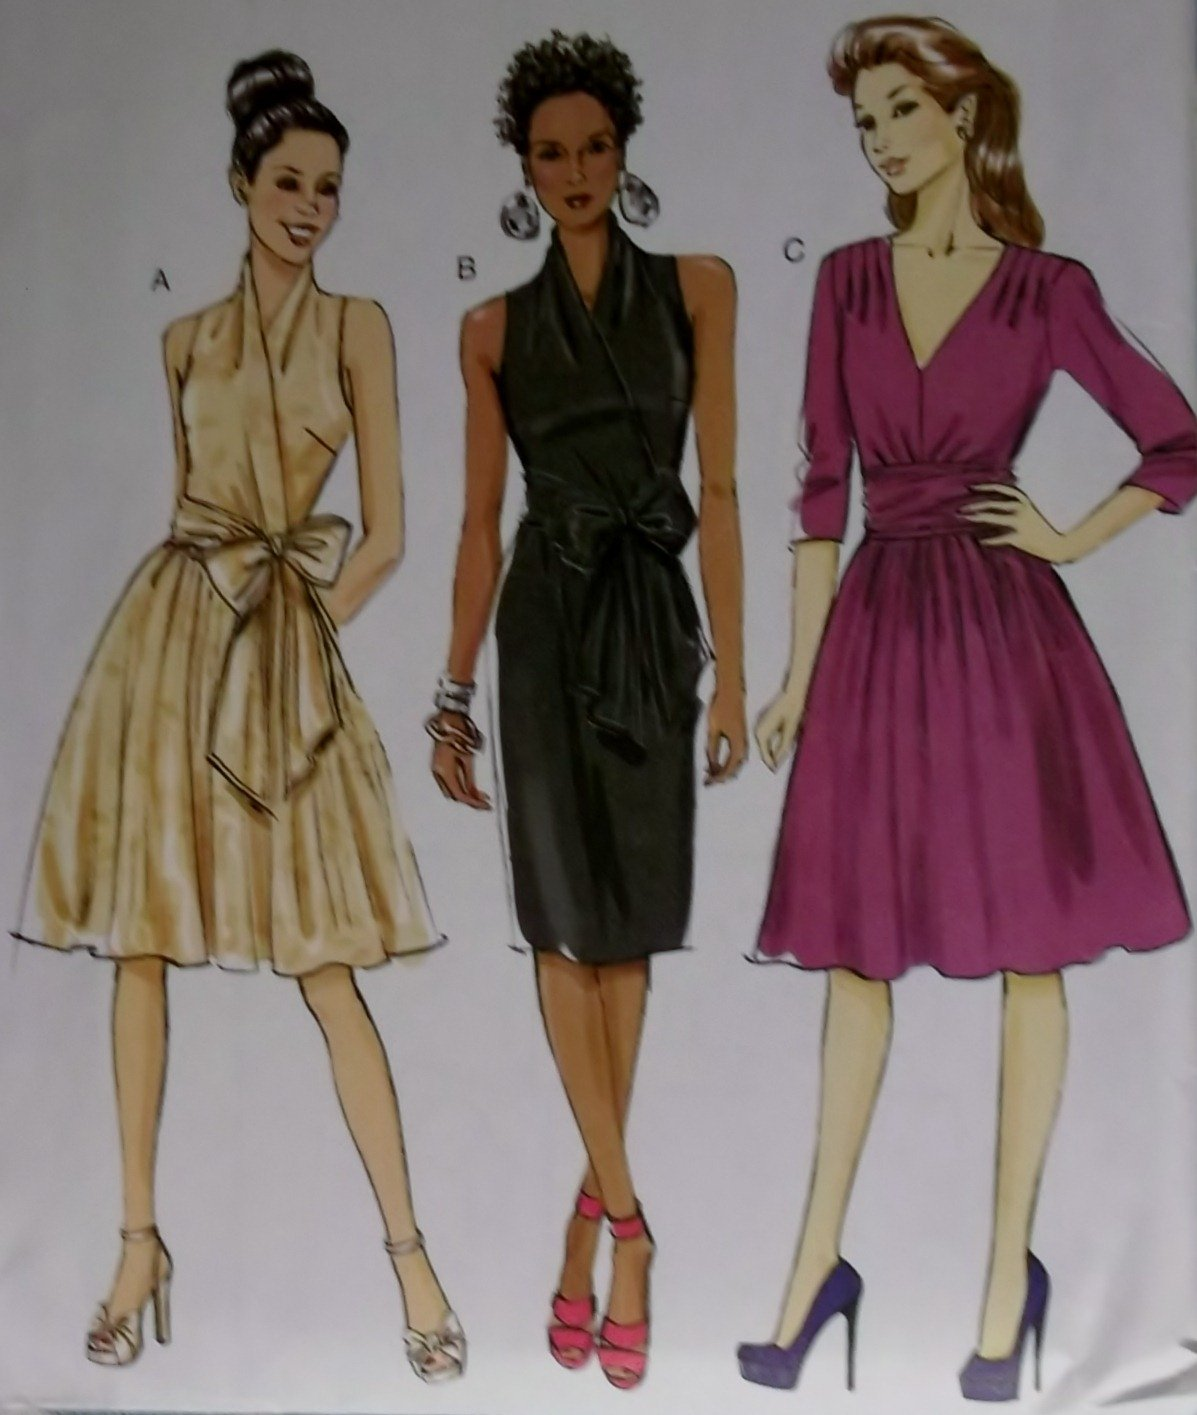 Butterick B 5850 Sewing Pattern, Misses' Dress, Size 8 to 16, UNCUT